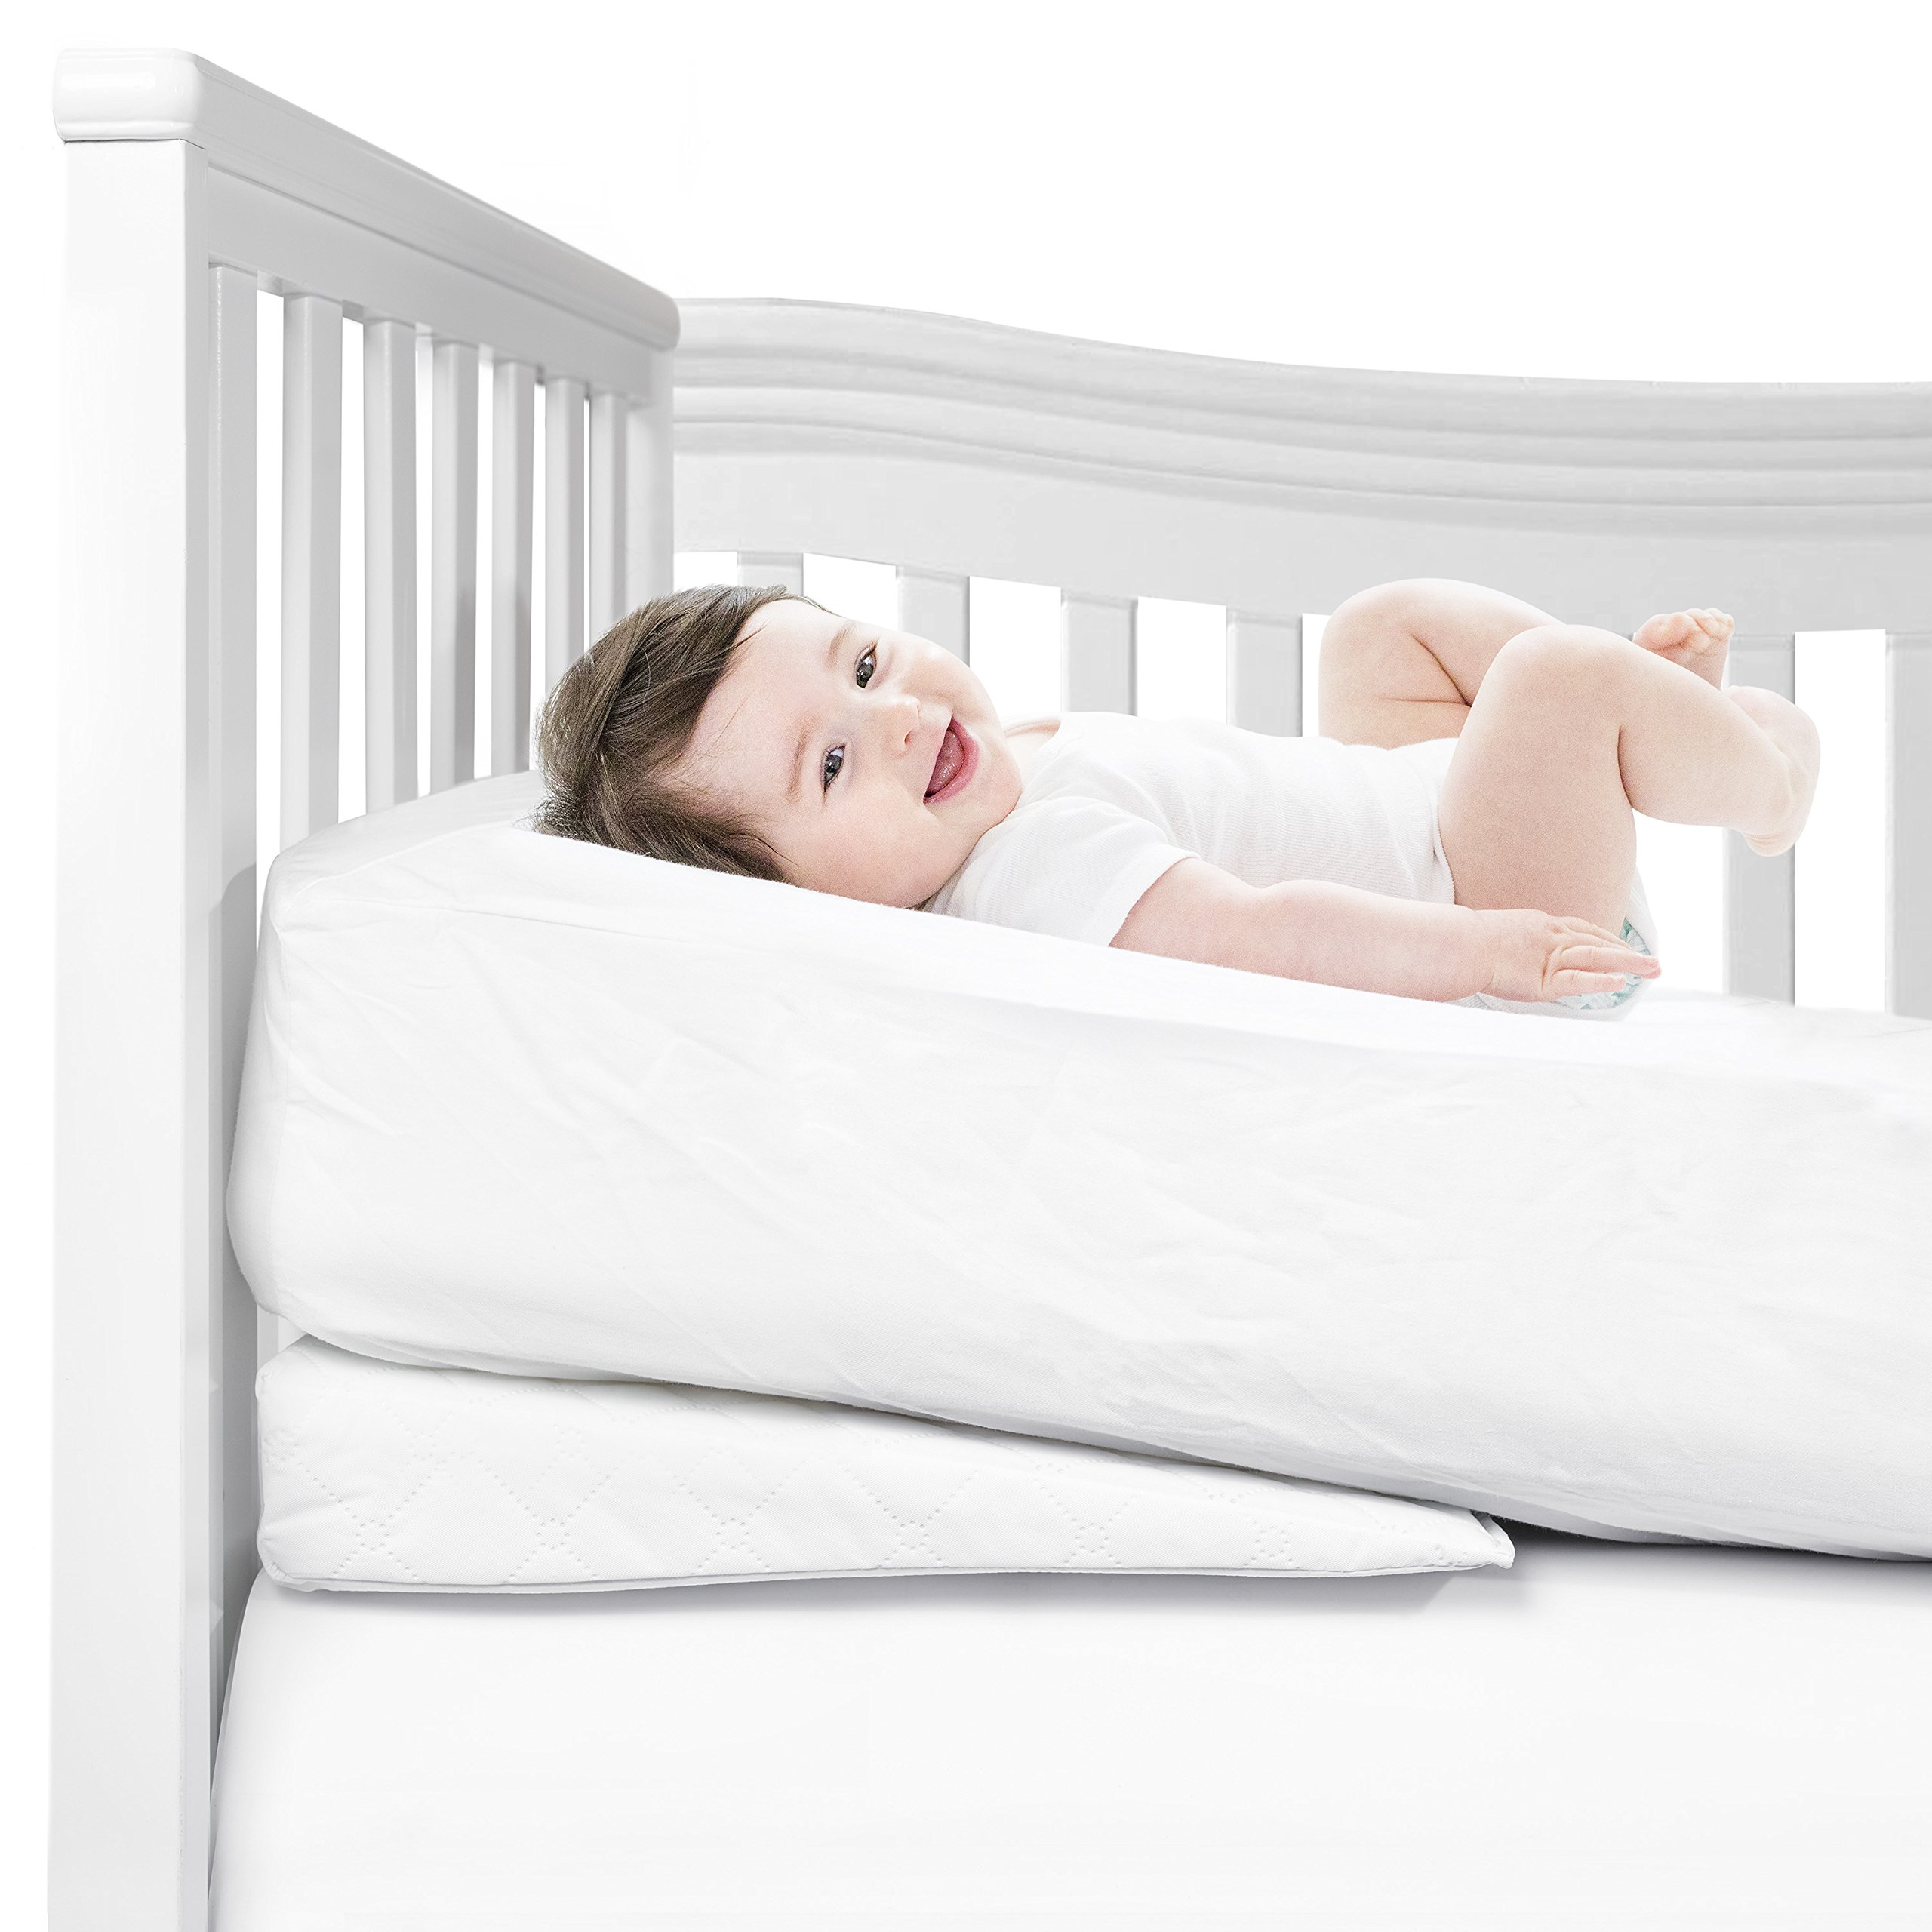 Comfy Rise Deluxe Crib Wedge